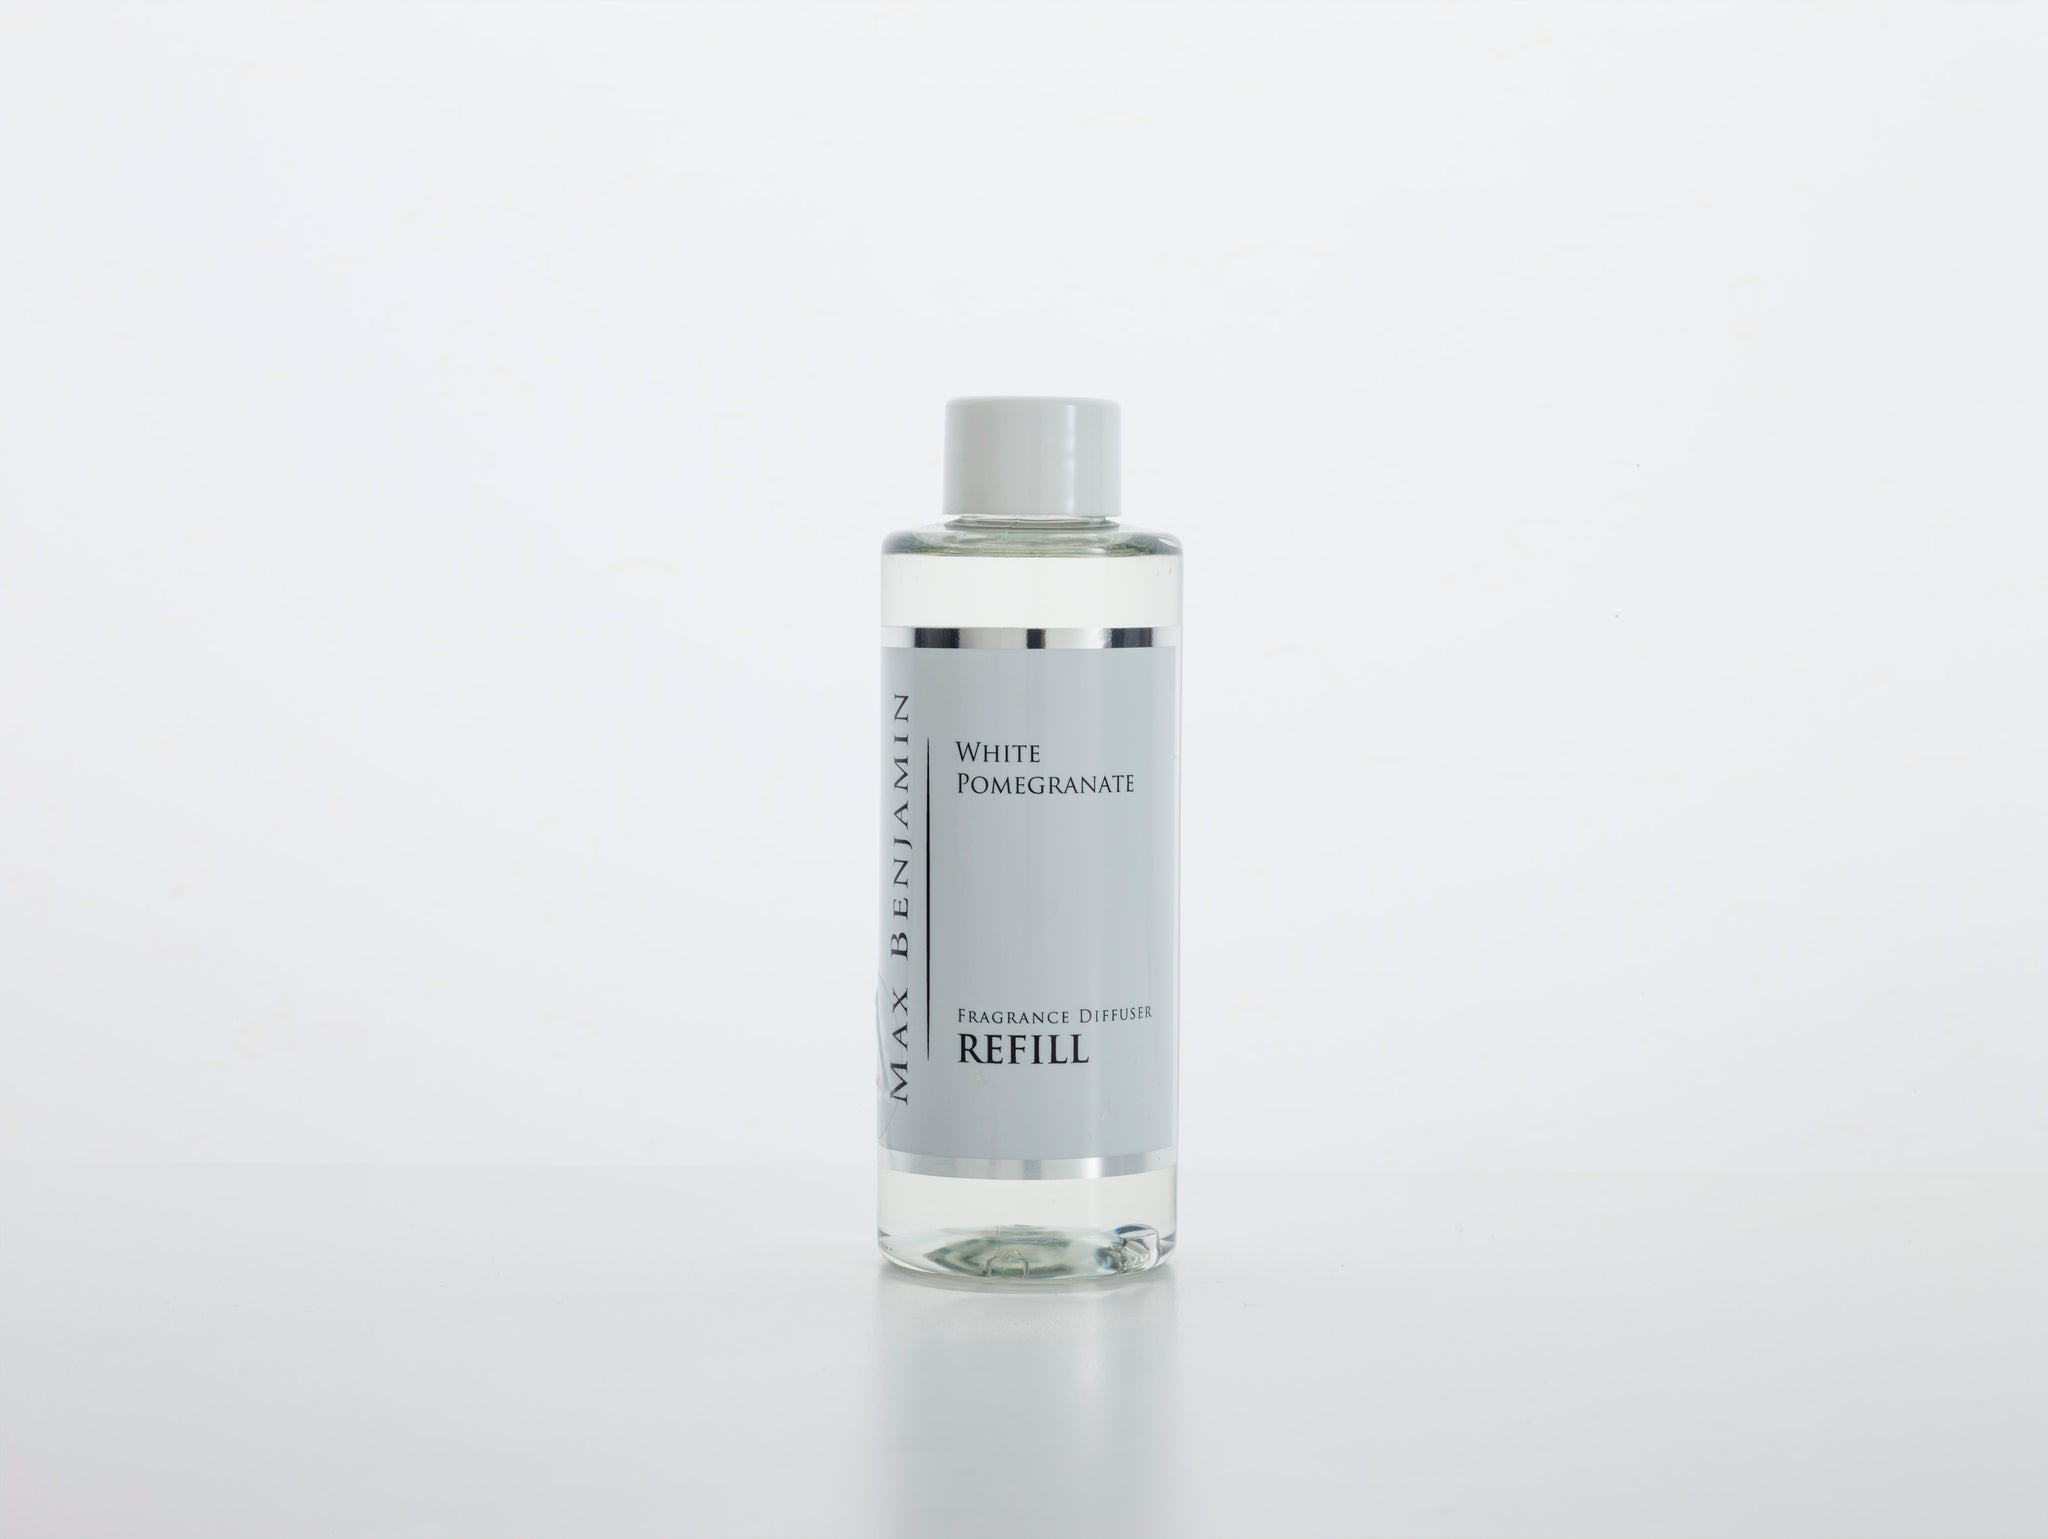 cadeauxwells - Fragrance Diffuser Refill - White Pomegranate - Max Benjamin - Candles